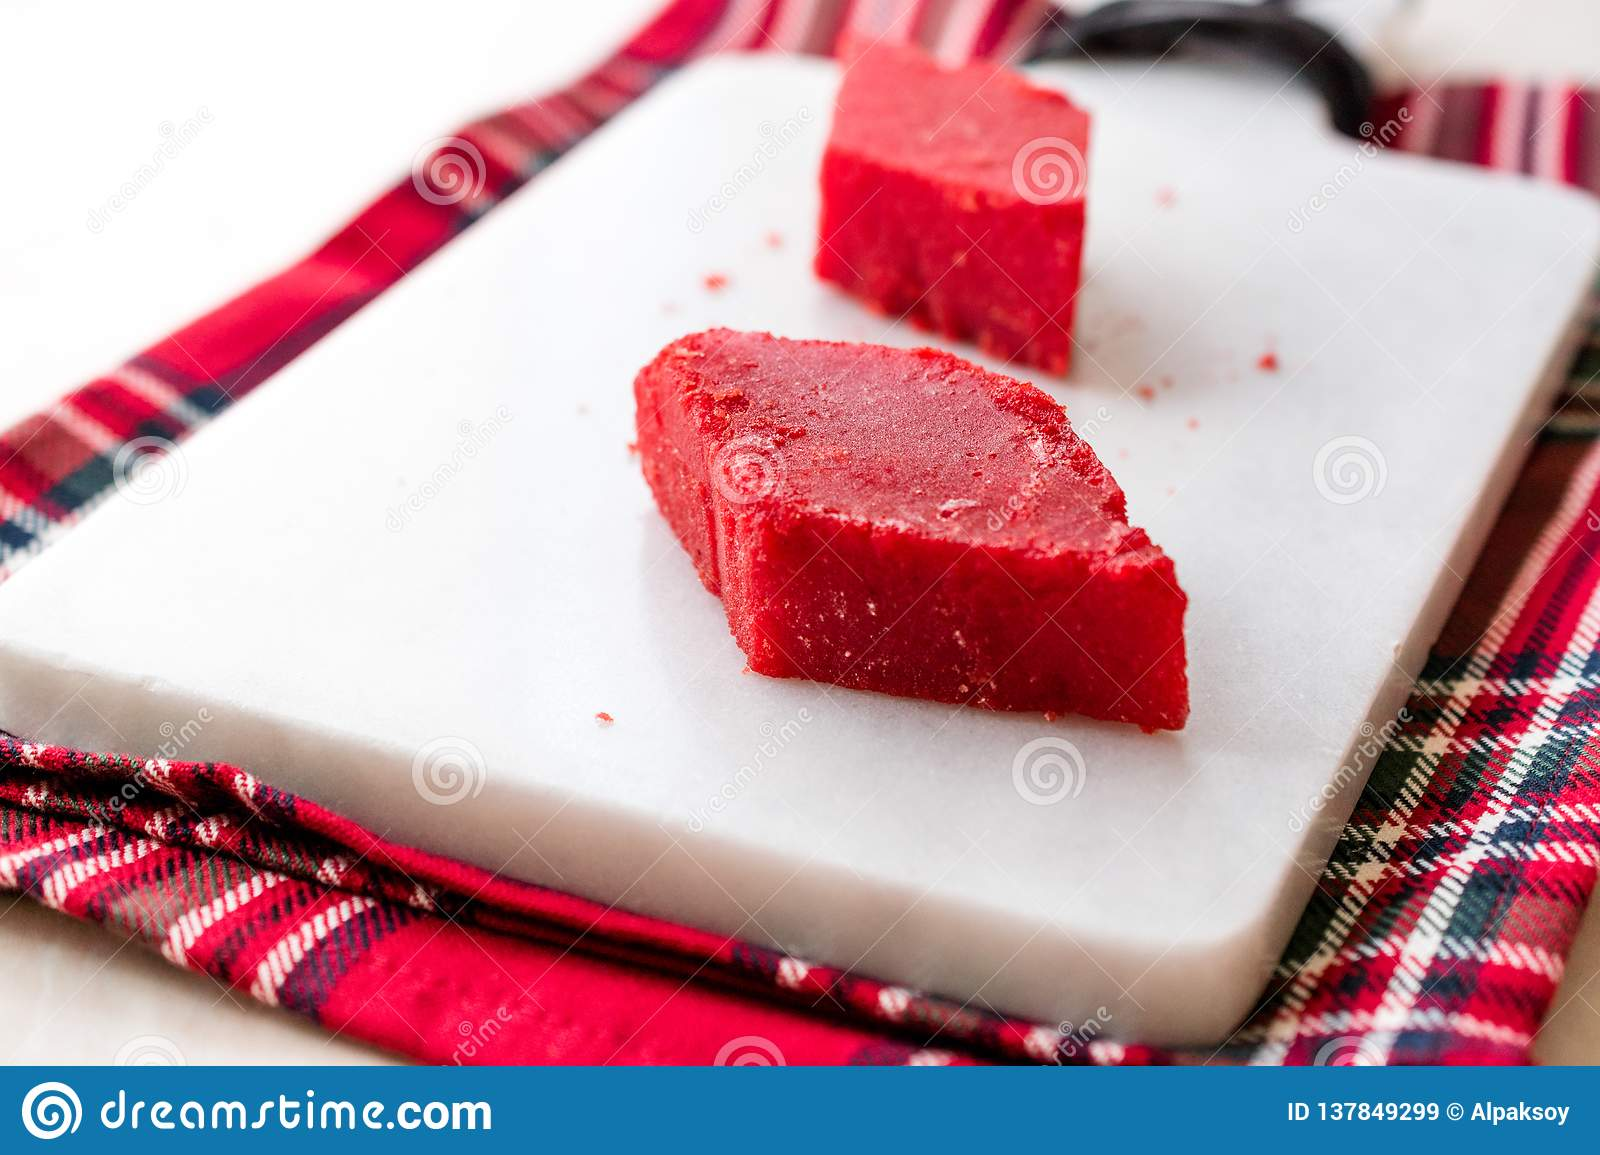 Crystallized Turkish Delight Red Sugar. Crystal Confectionery Nobet Sekeri on White Marble Surface.